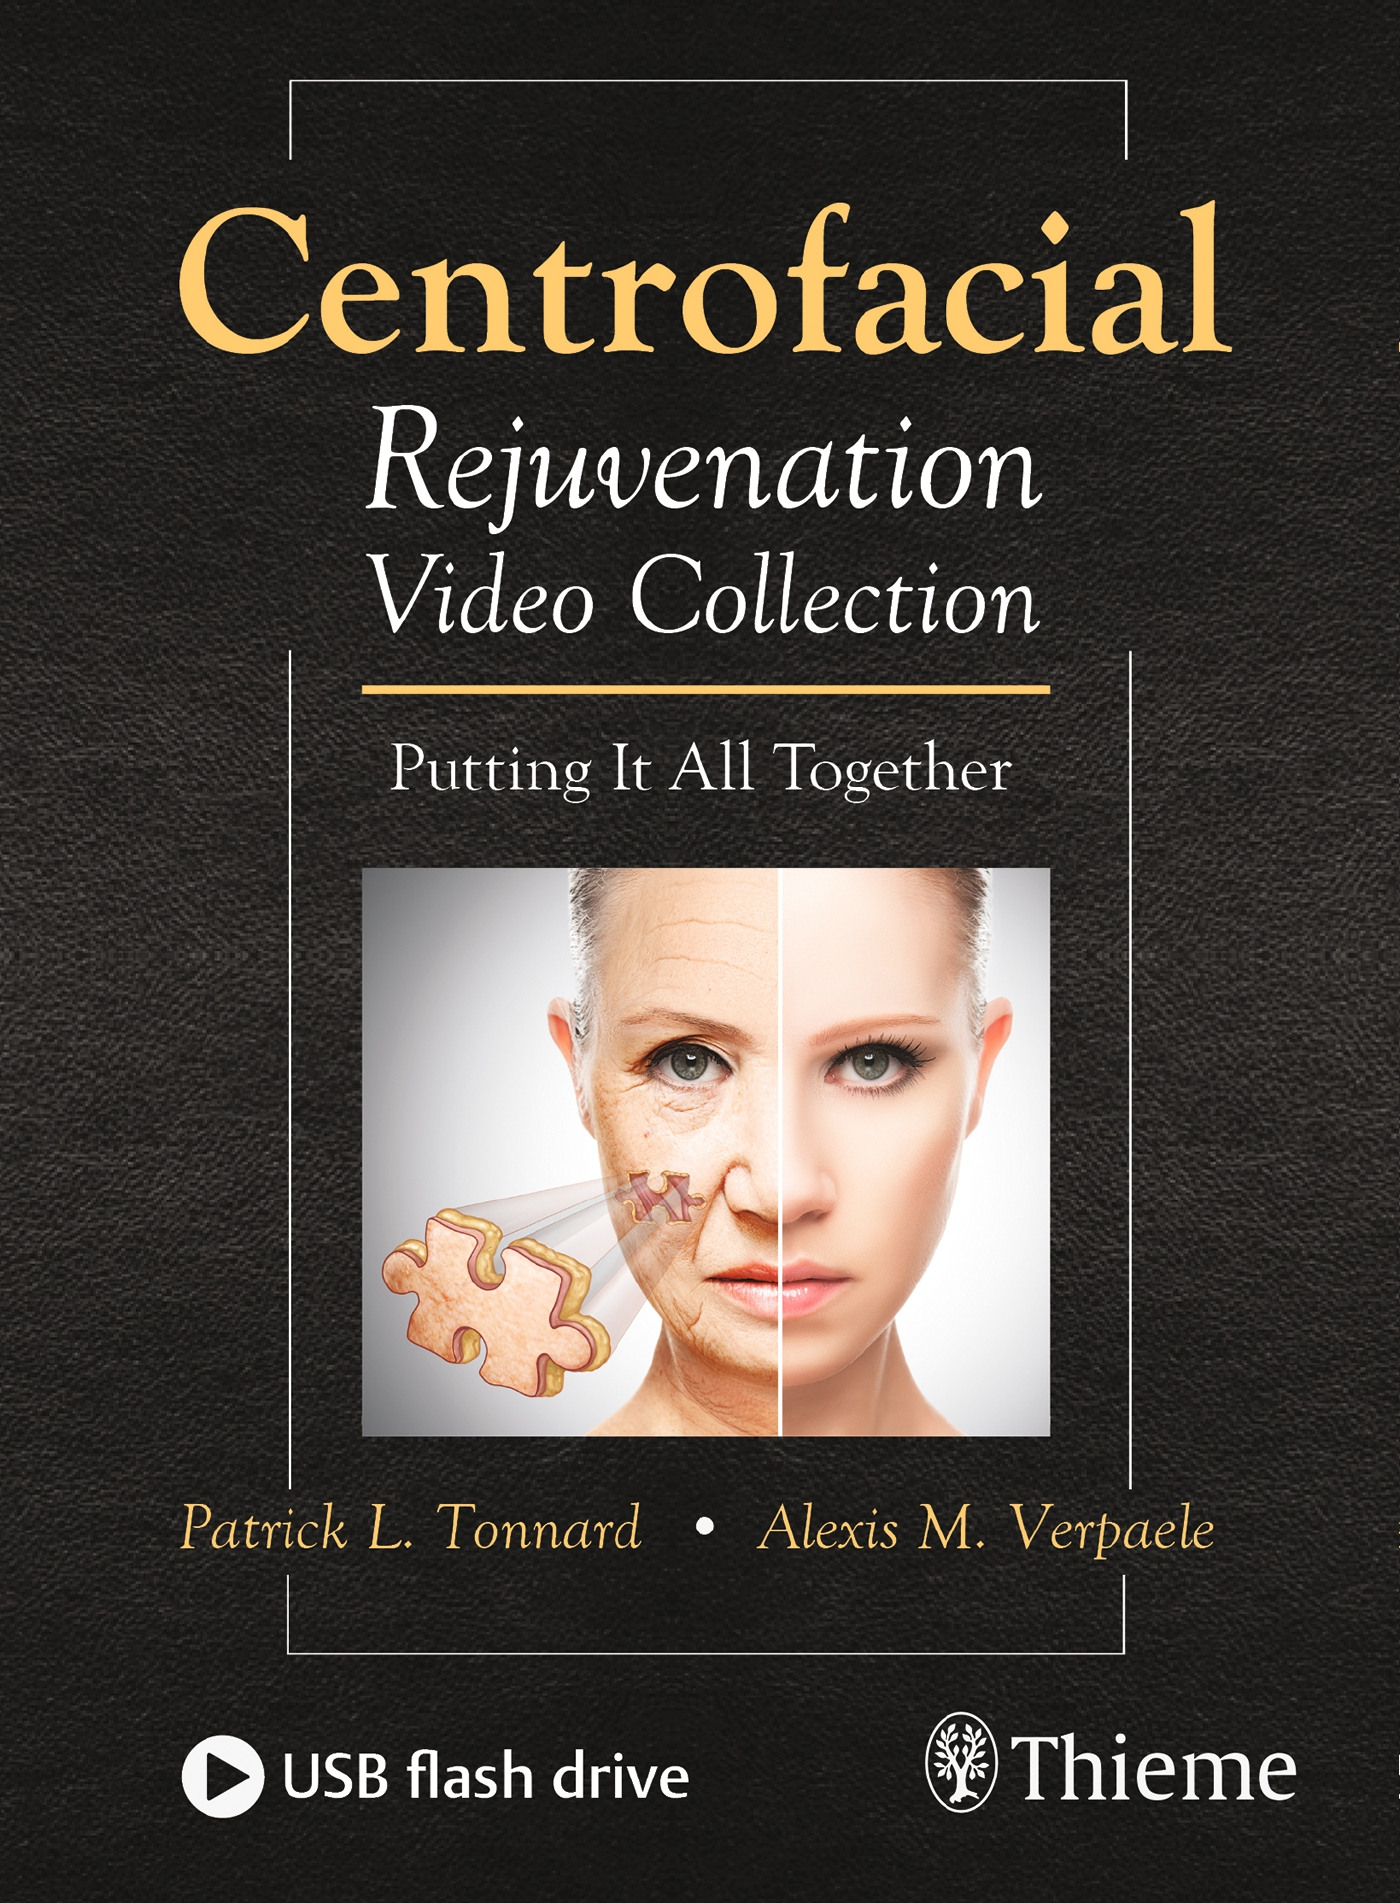 Centrofacial Rejuvenation Video Collection